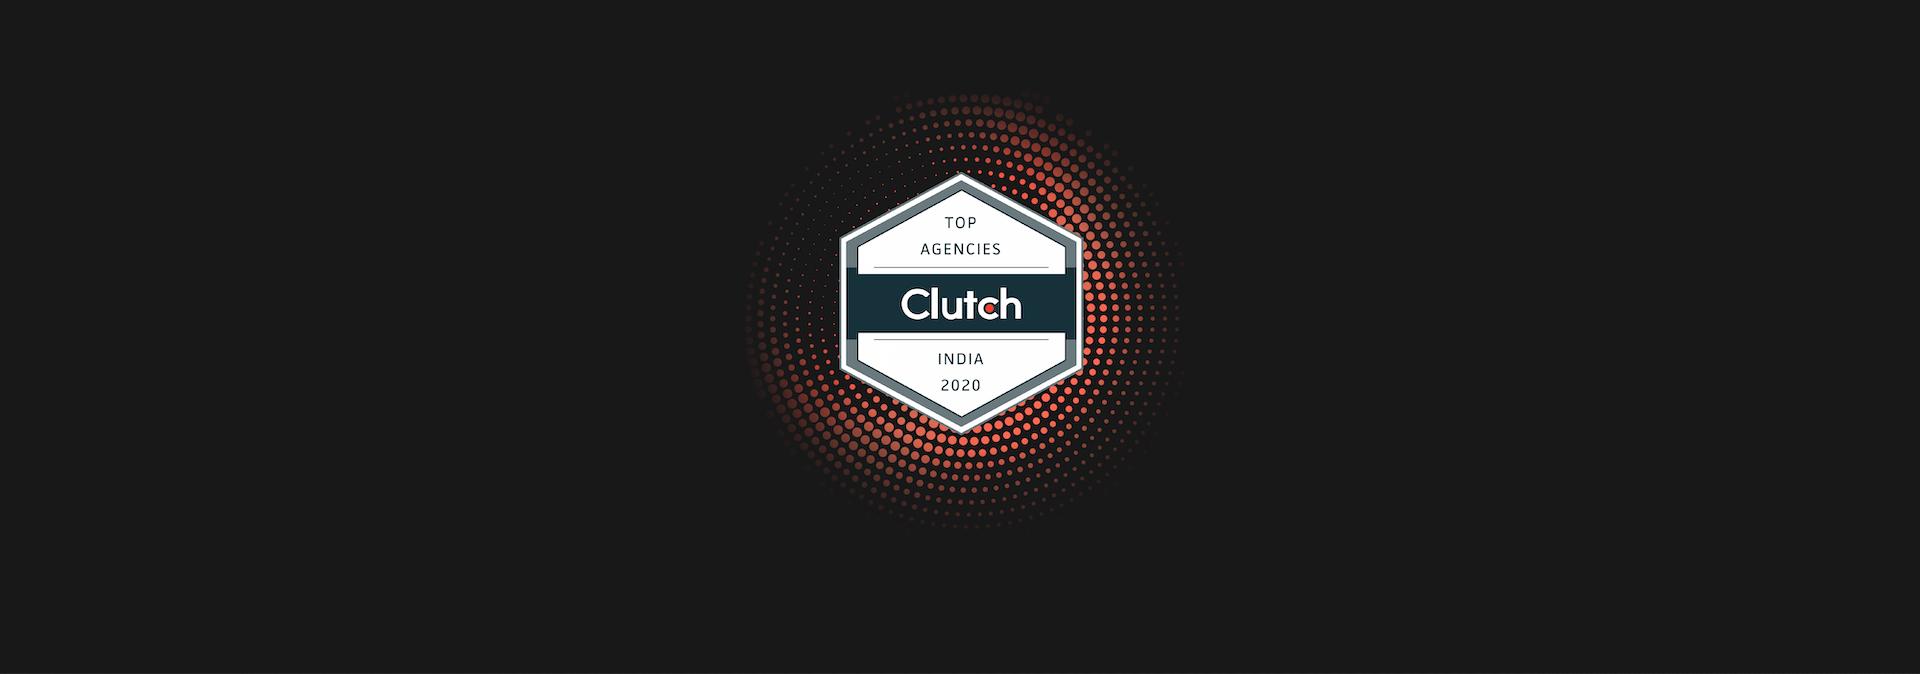 Ingeniouscope Proud to be Named a Leading Clutch Agency for 2020